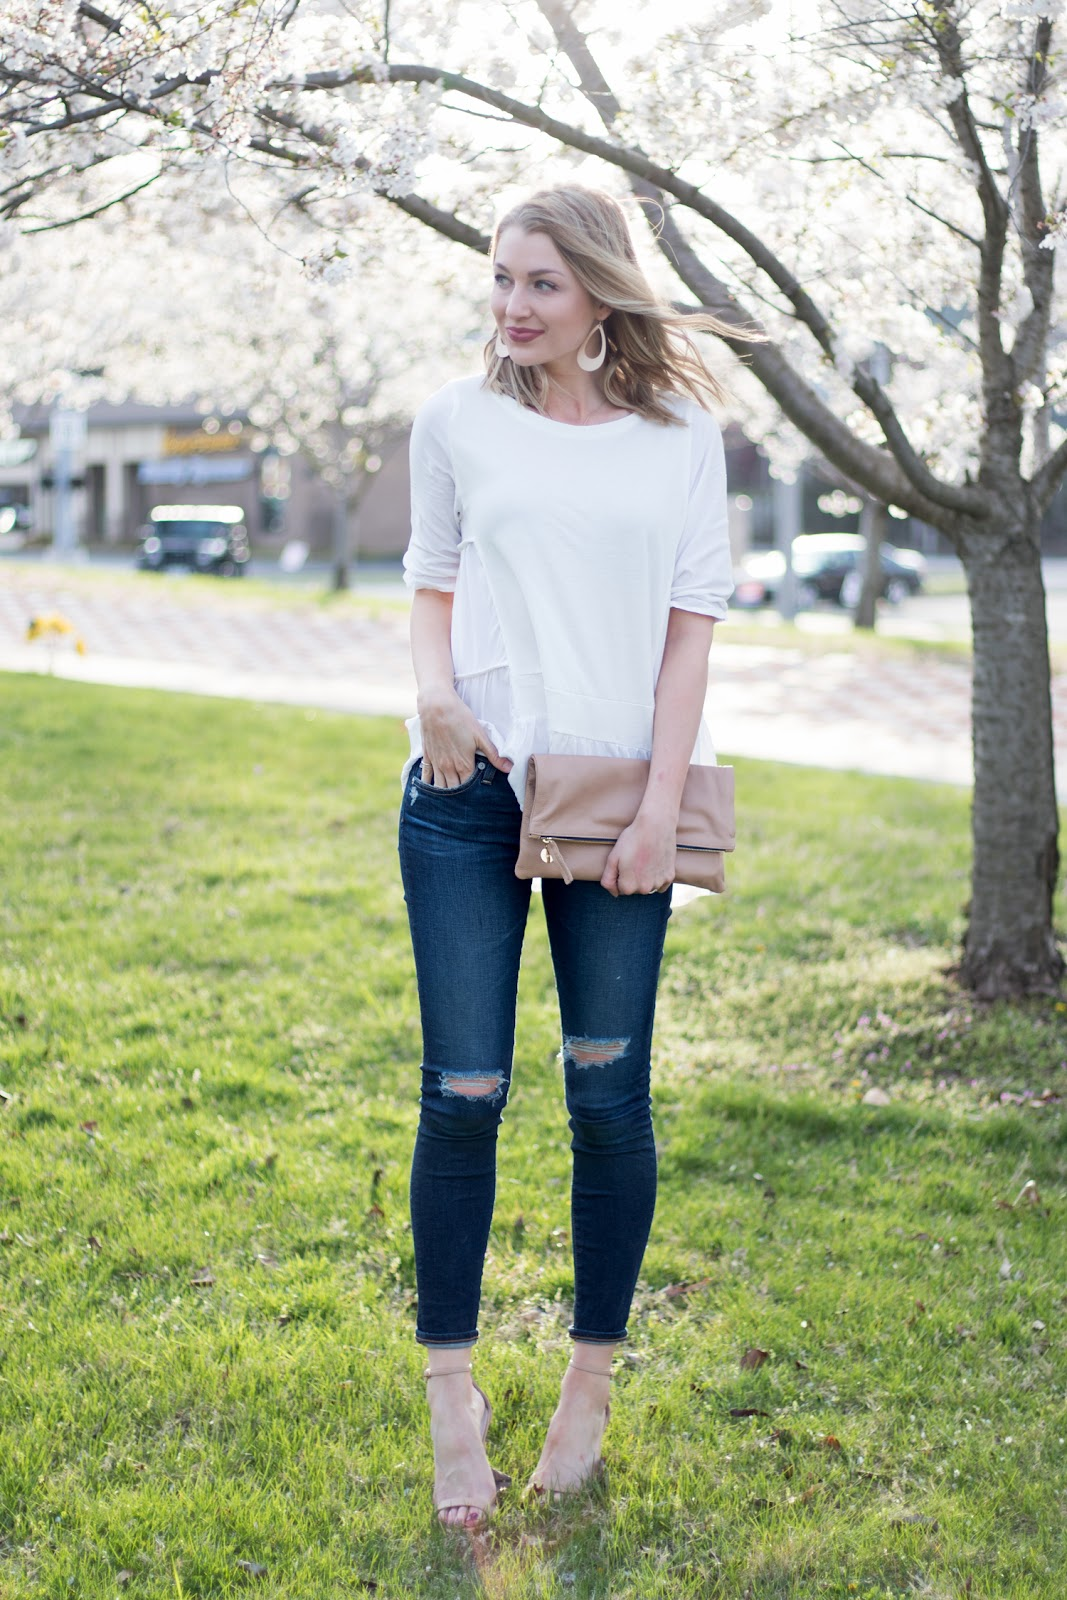 White top + distressed denim for spring